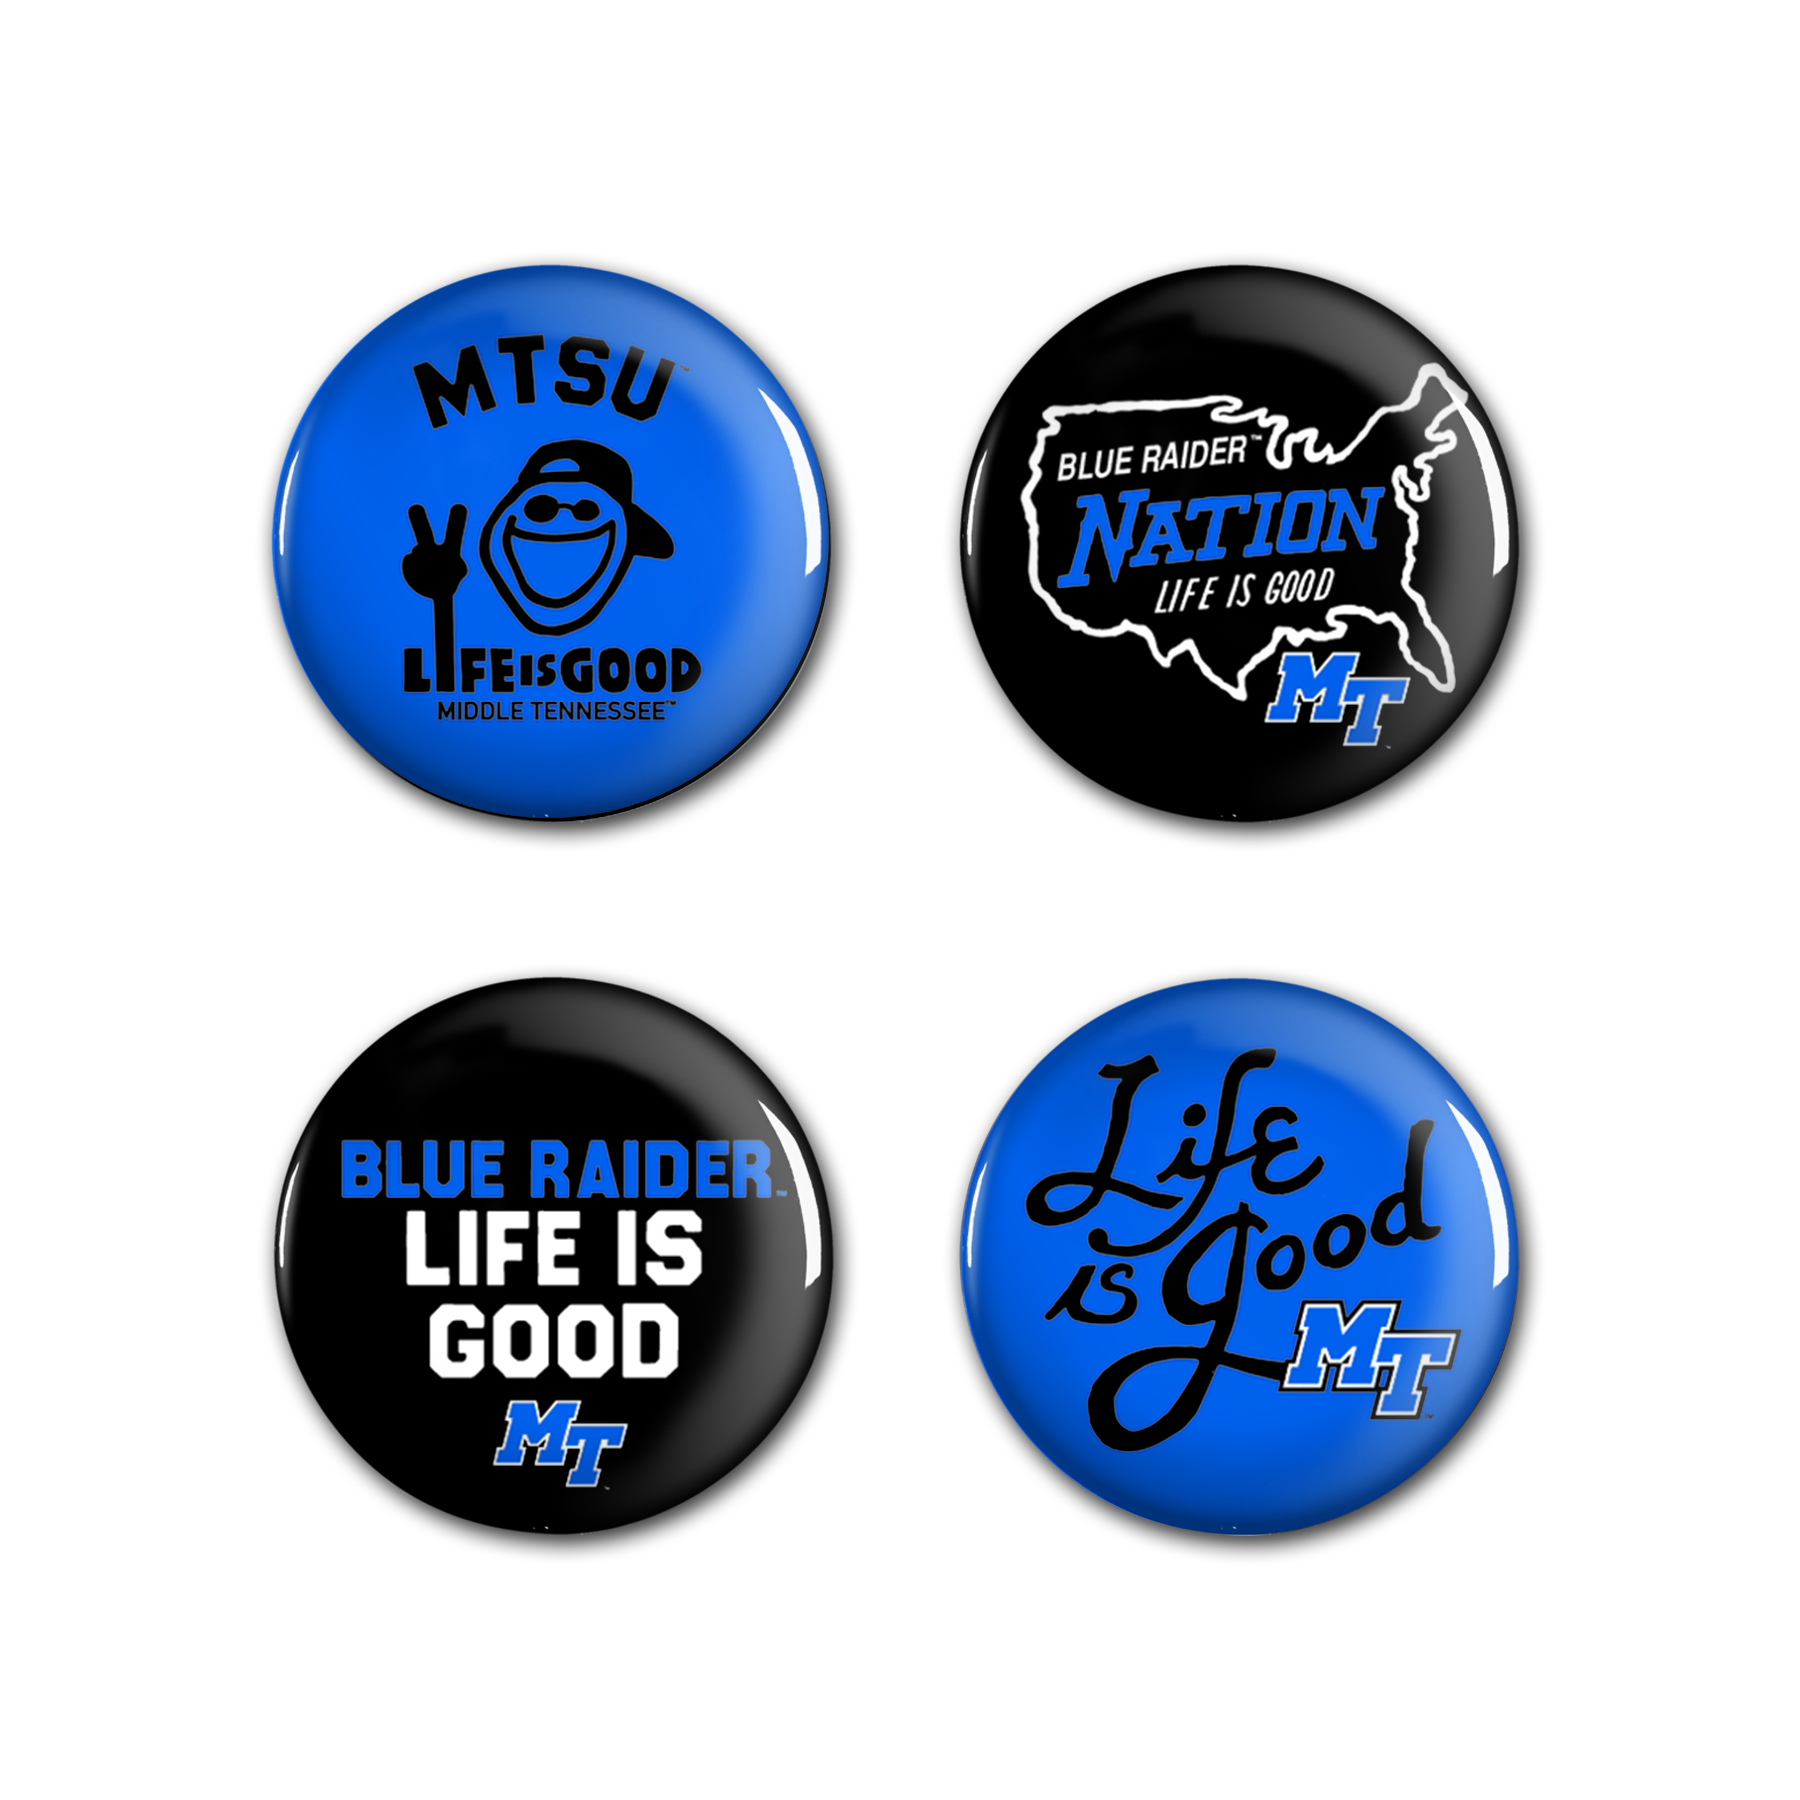 MTSU Life is Good 4-pack Buttons